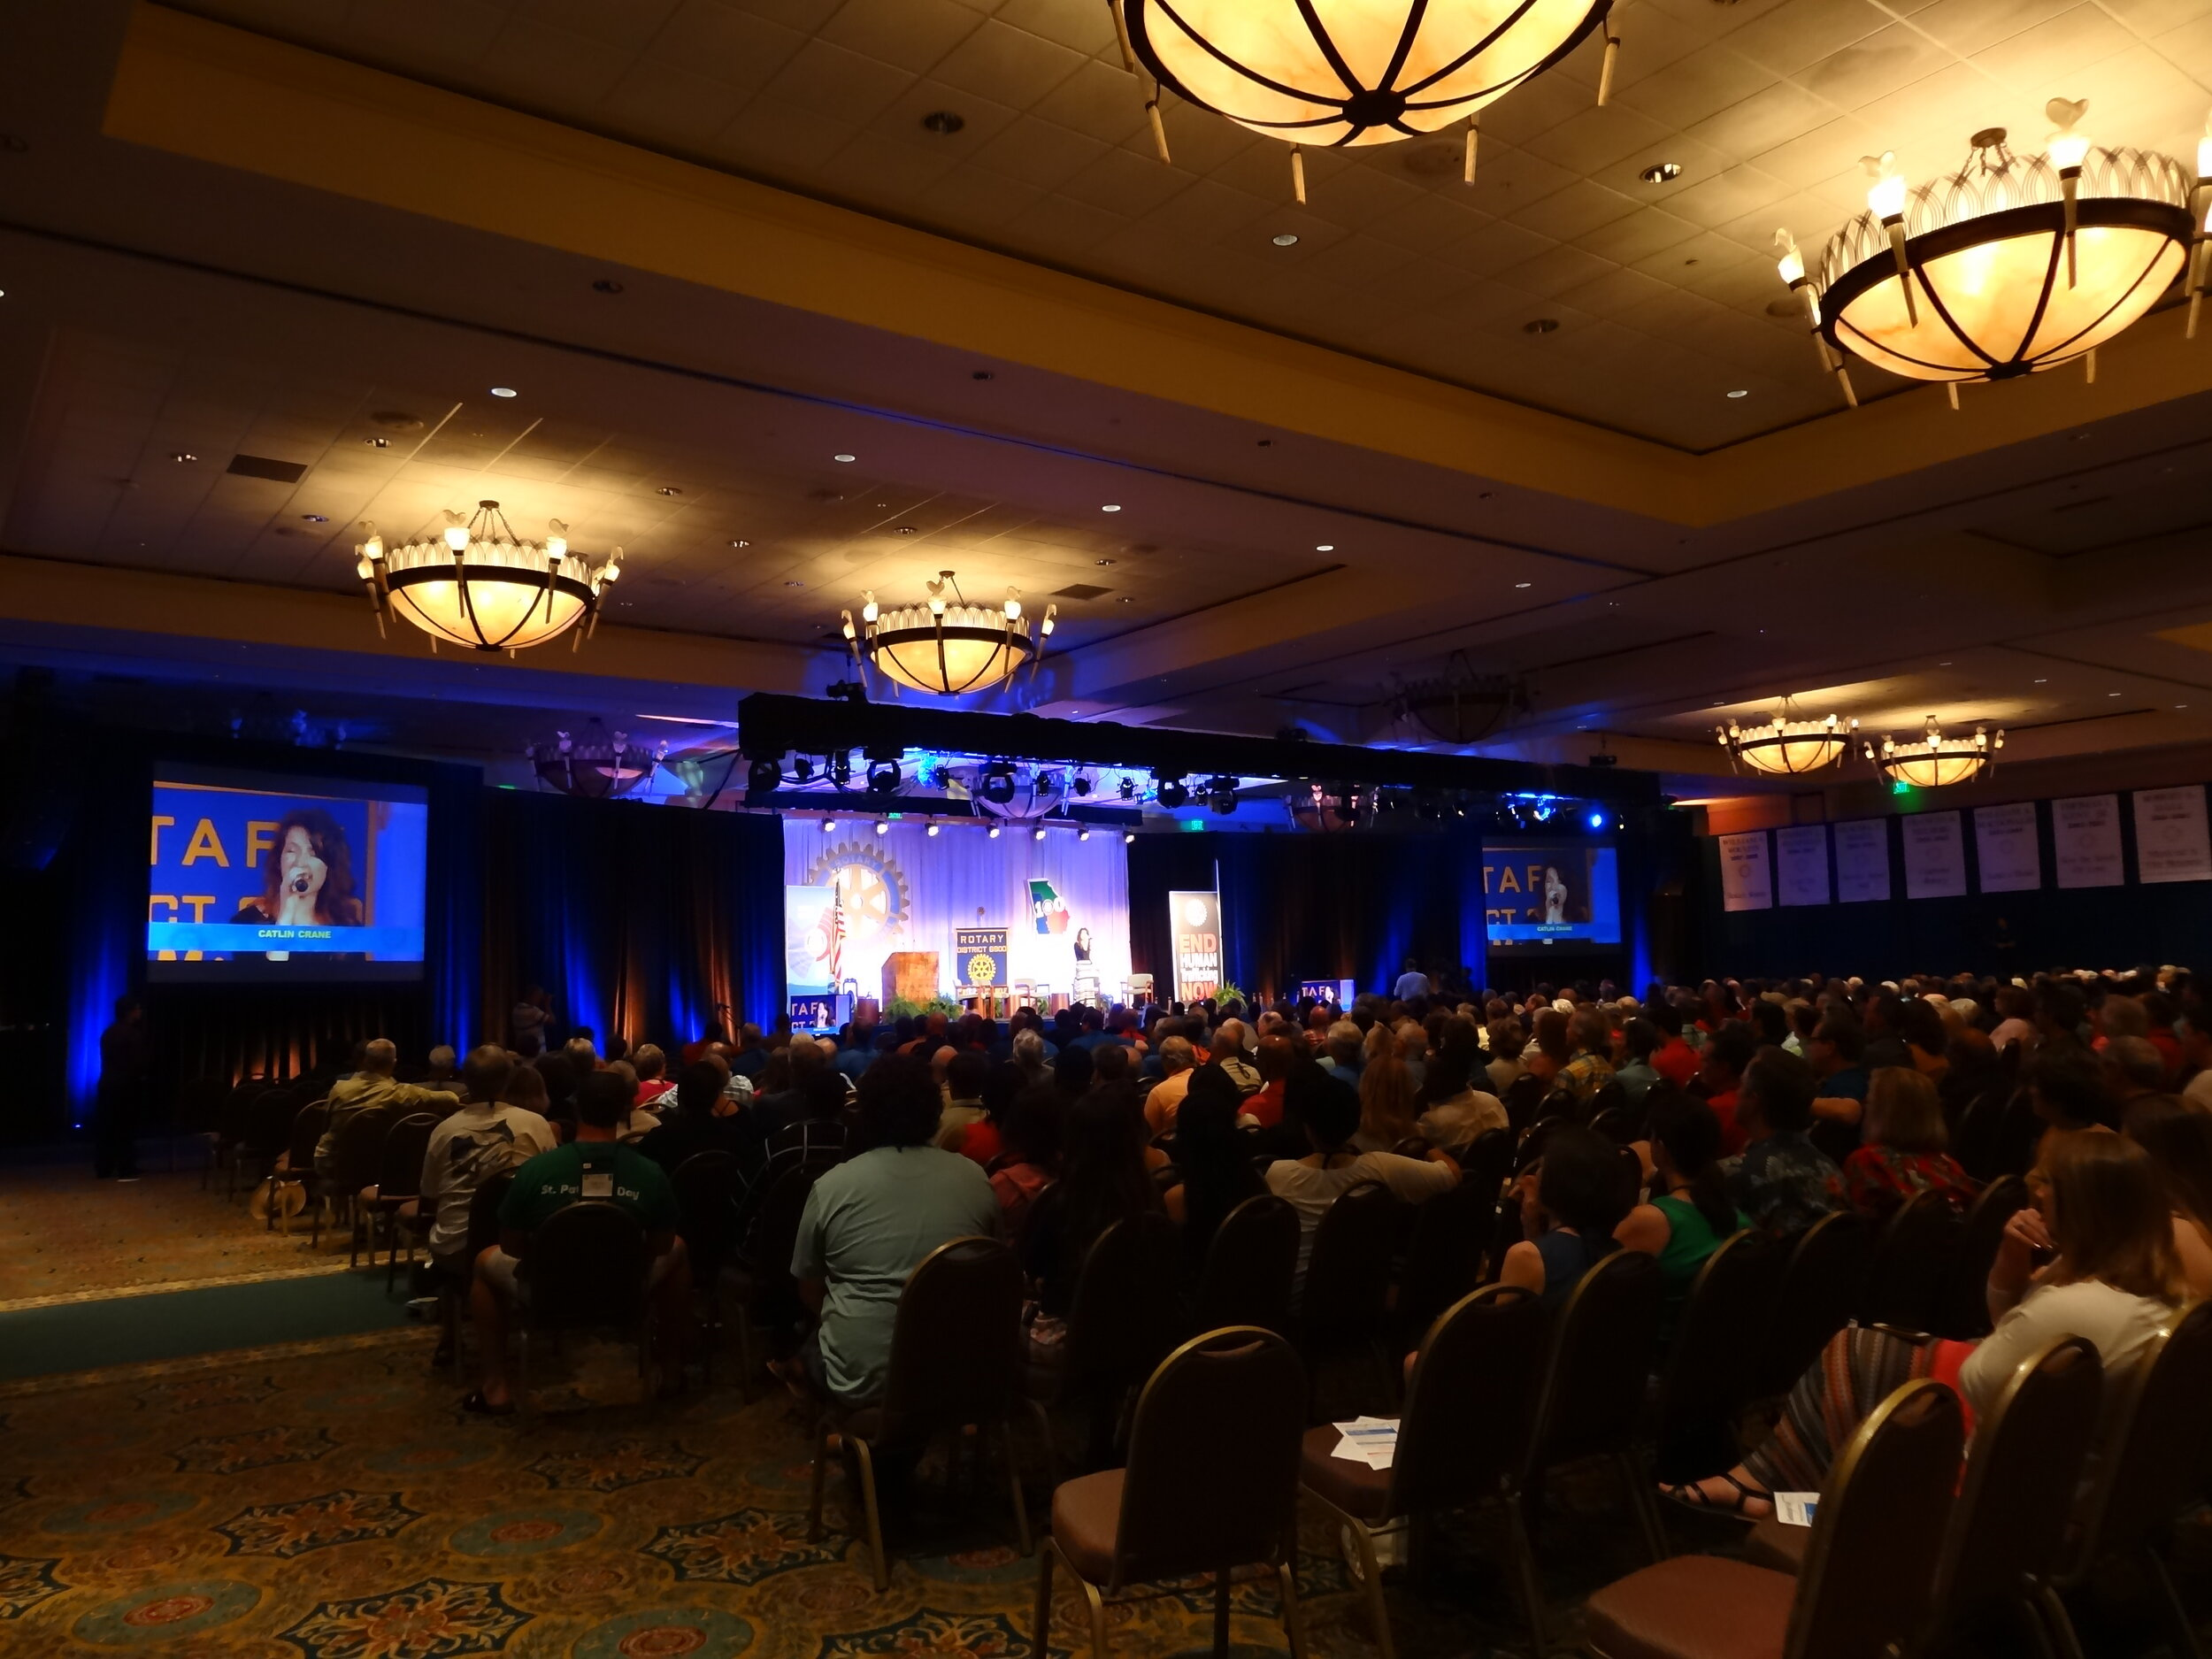 """2014 - SINGING """"BREAK THE CHAINS"""" AT THE REGIONAL ROTARY CONVENTION"""